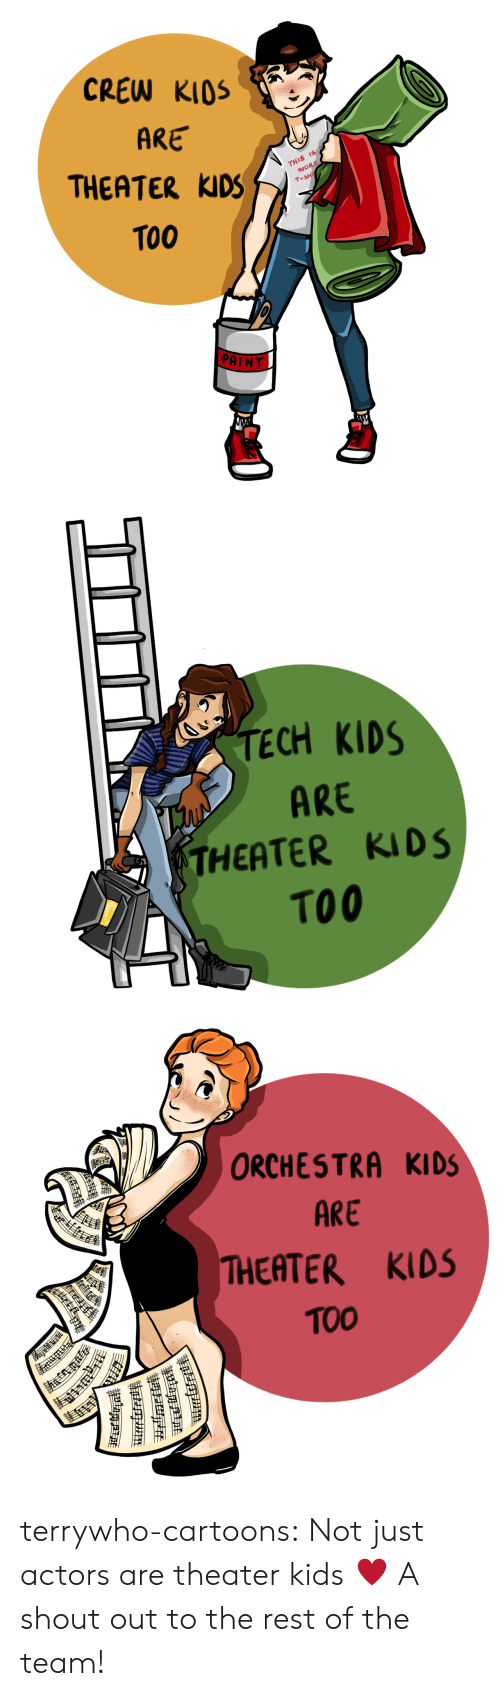 Ared: CREW KIOS  ARE  THEATER KIDS  TO0  wo  PAINT   TECH KIDS  ARE  THEATER KIDS  TO0   ORCHESTRA KIDS  ARE  THEATER KIDS  TOO terrywho-cartoons: Not just actors are theater kids ♥️ A shout out to the rest of the team!